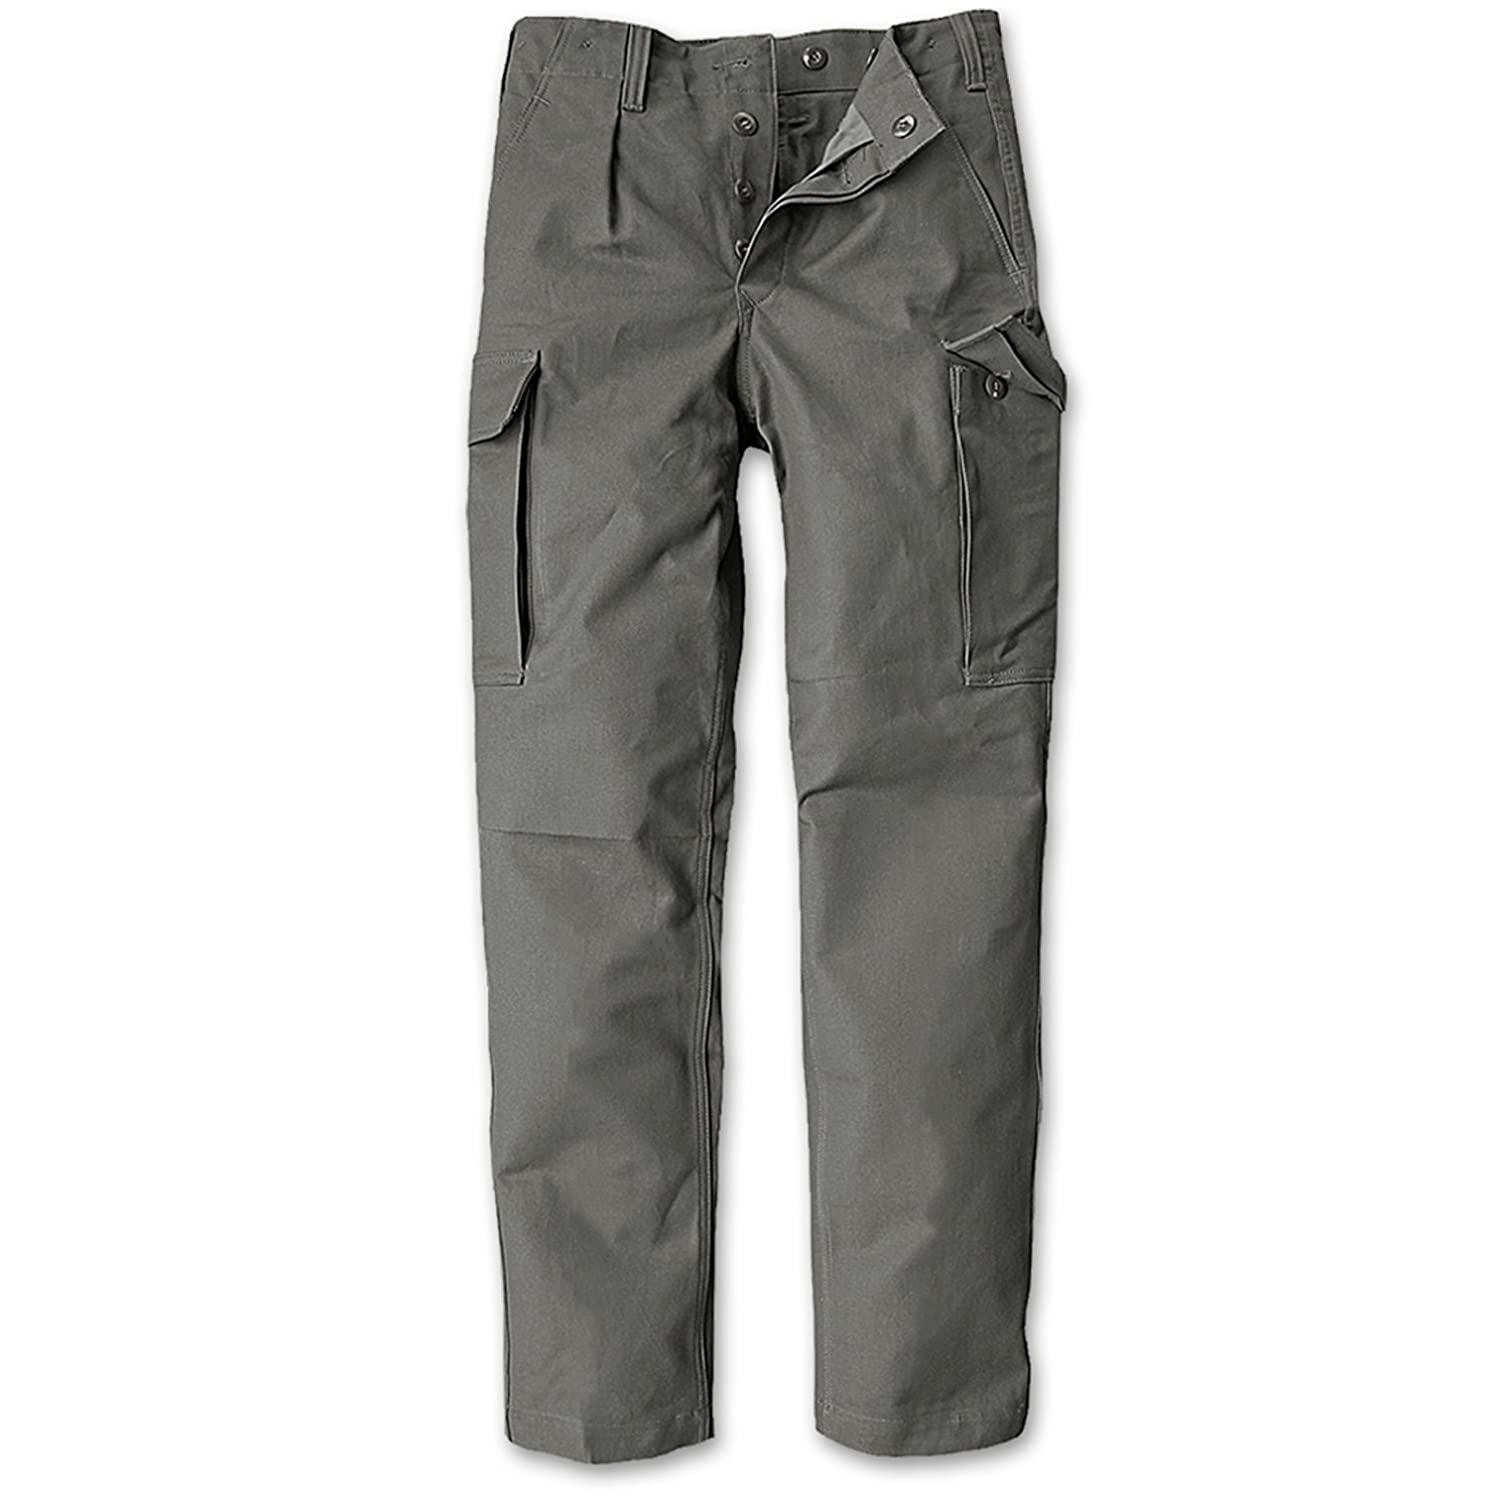 pants supply moleskin German uniform